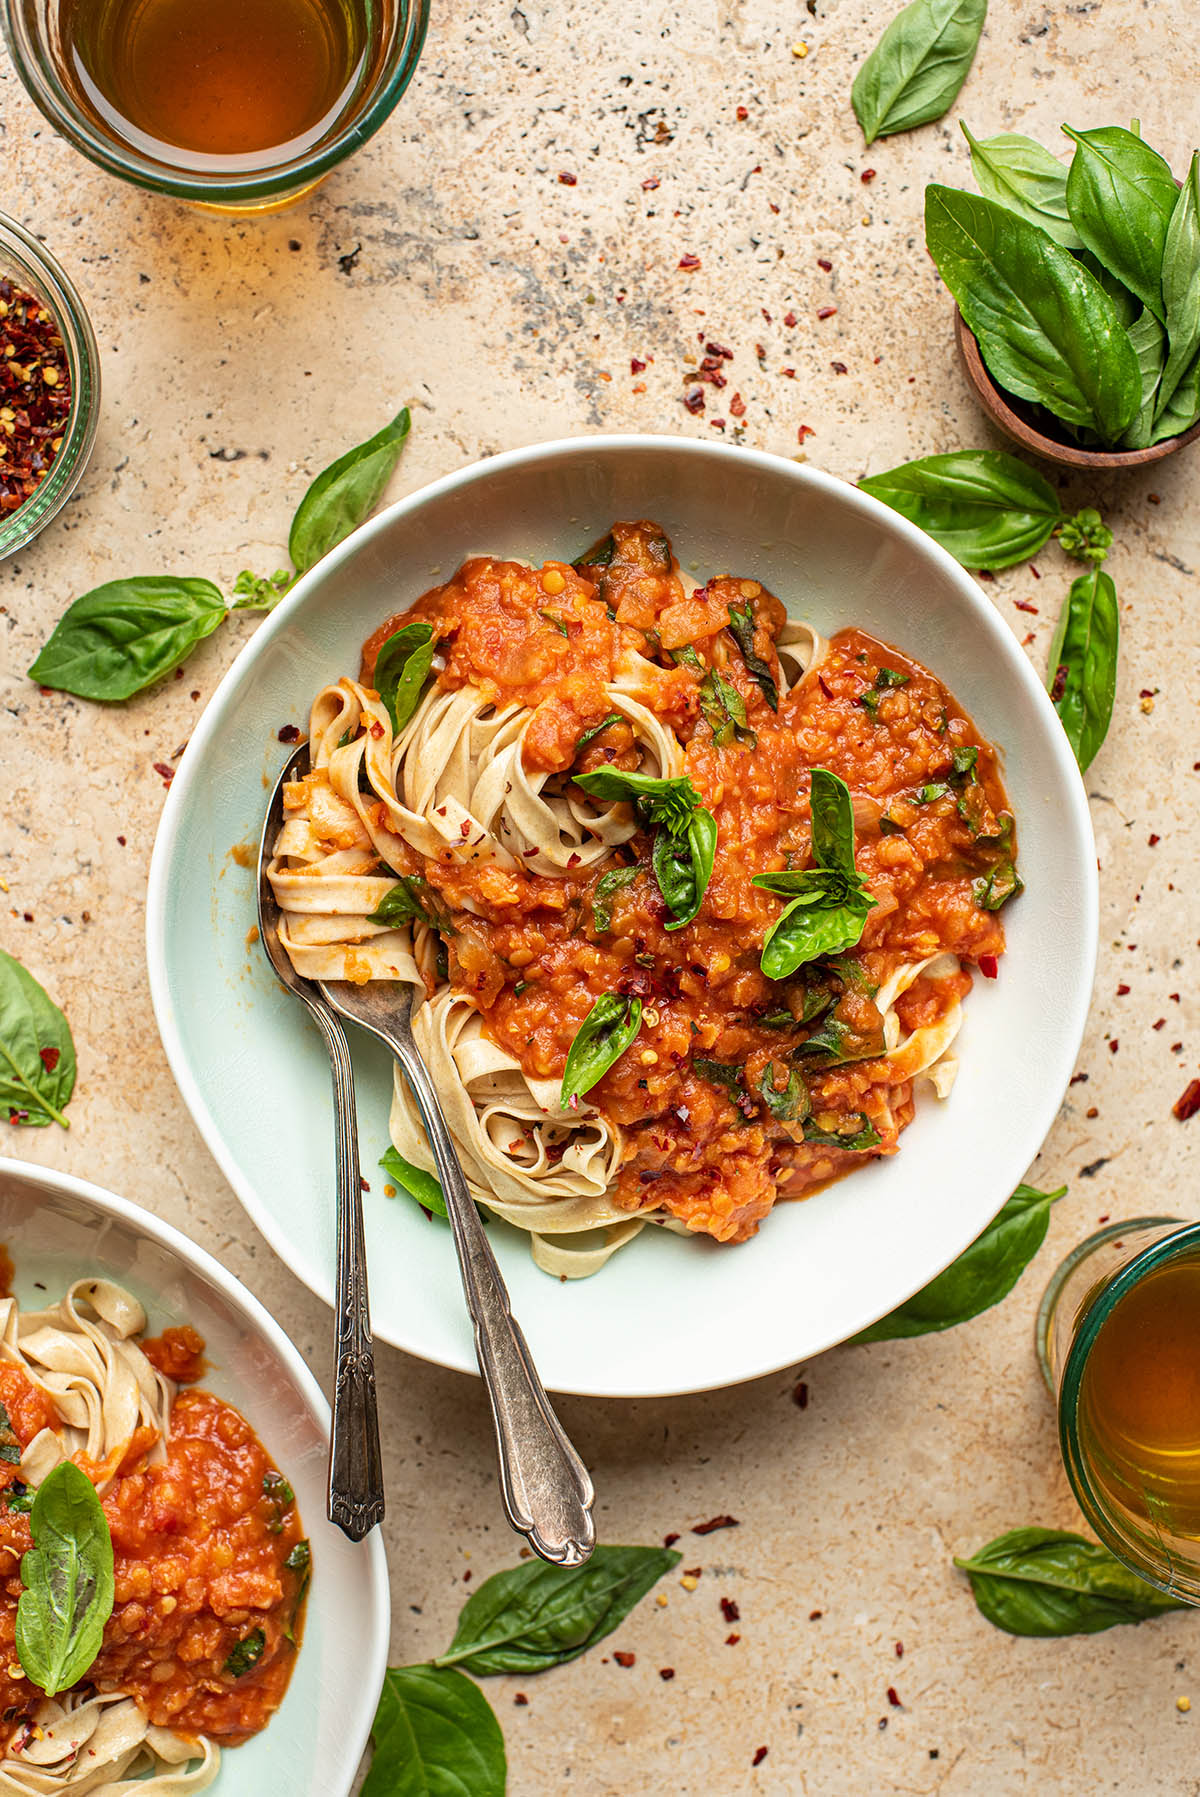 A bowl of lentil bolognese with pasta and basil.